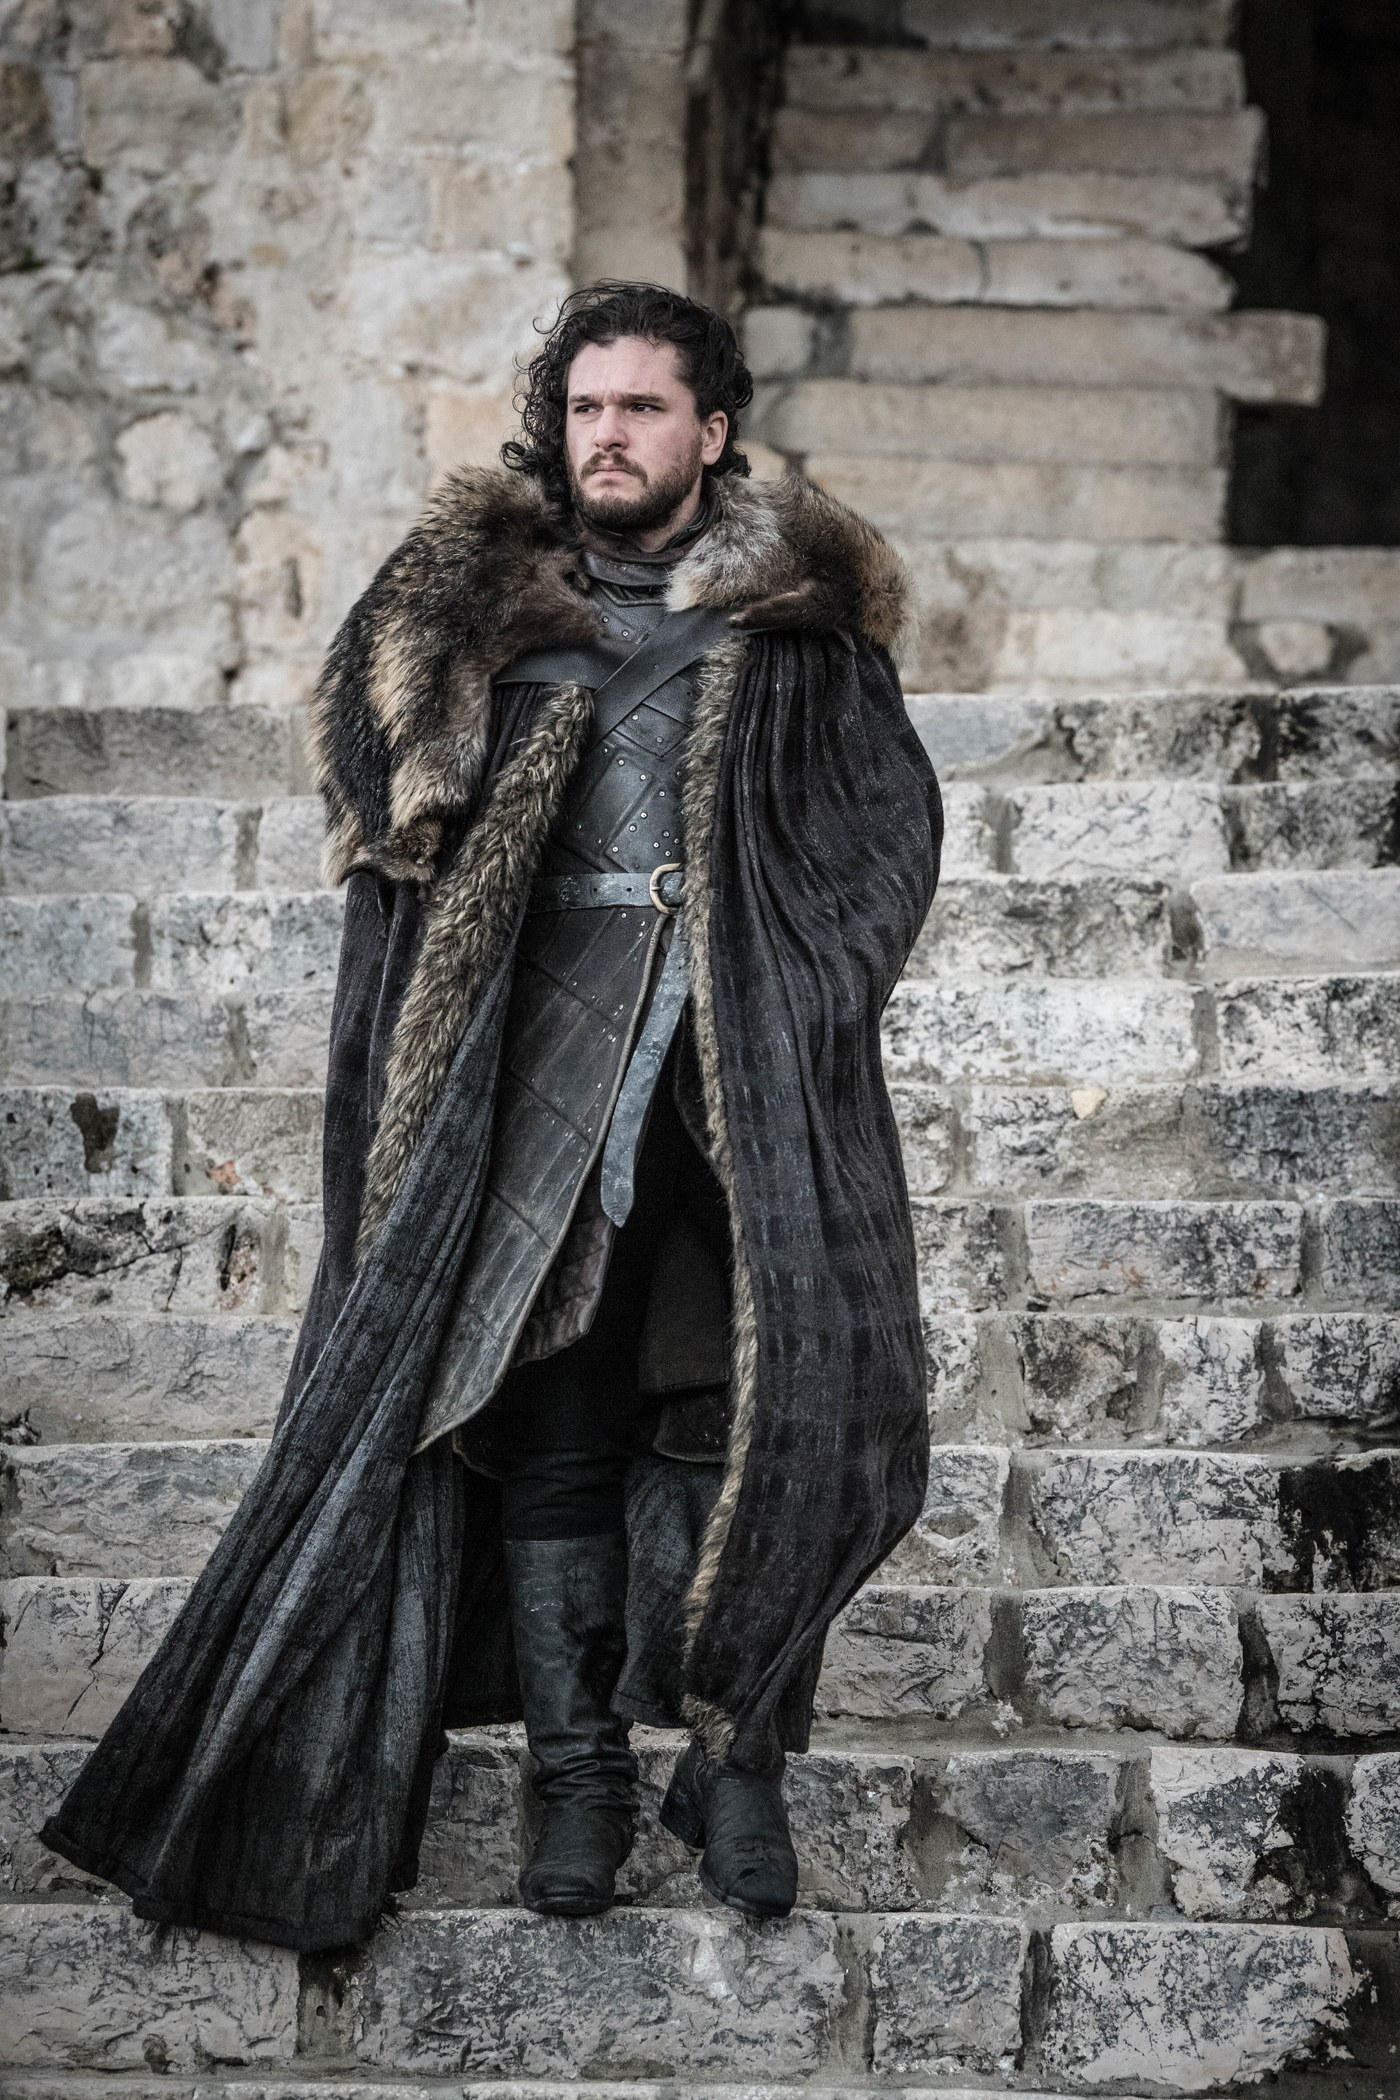 Jon Snow in the final episode of Game of Thrones.